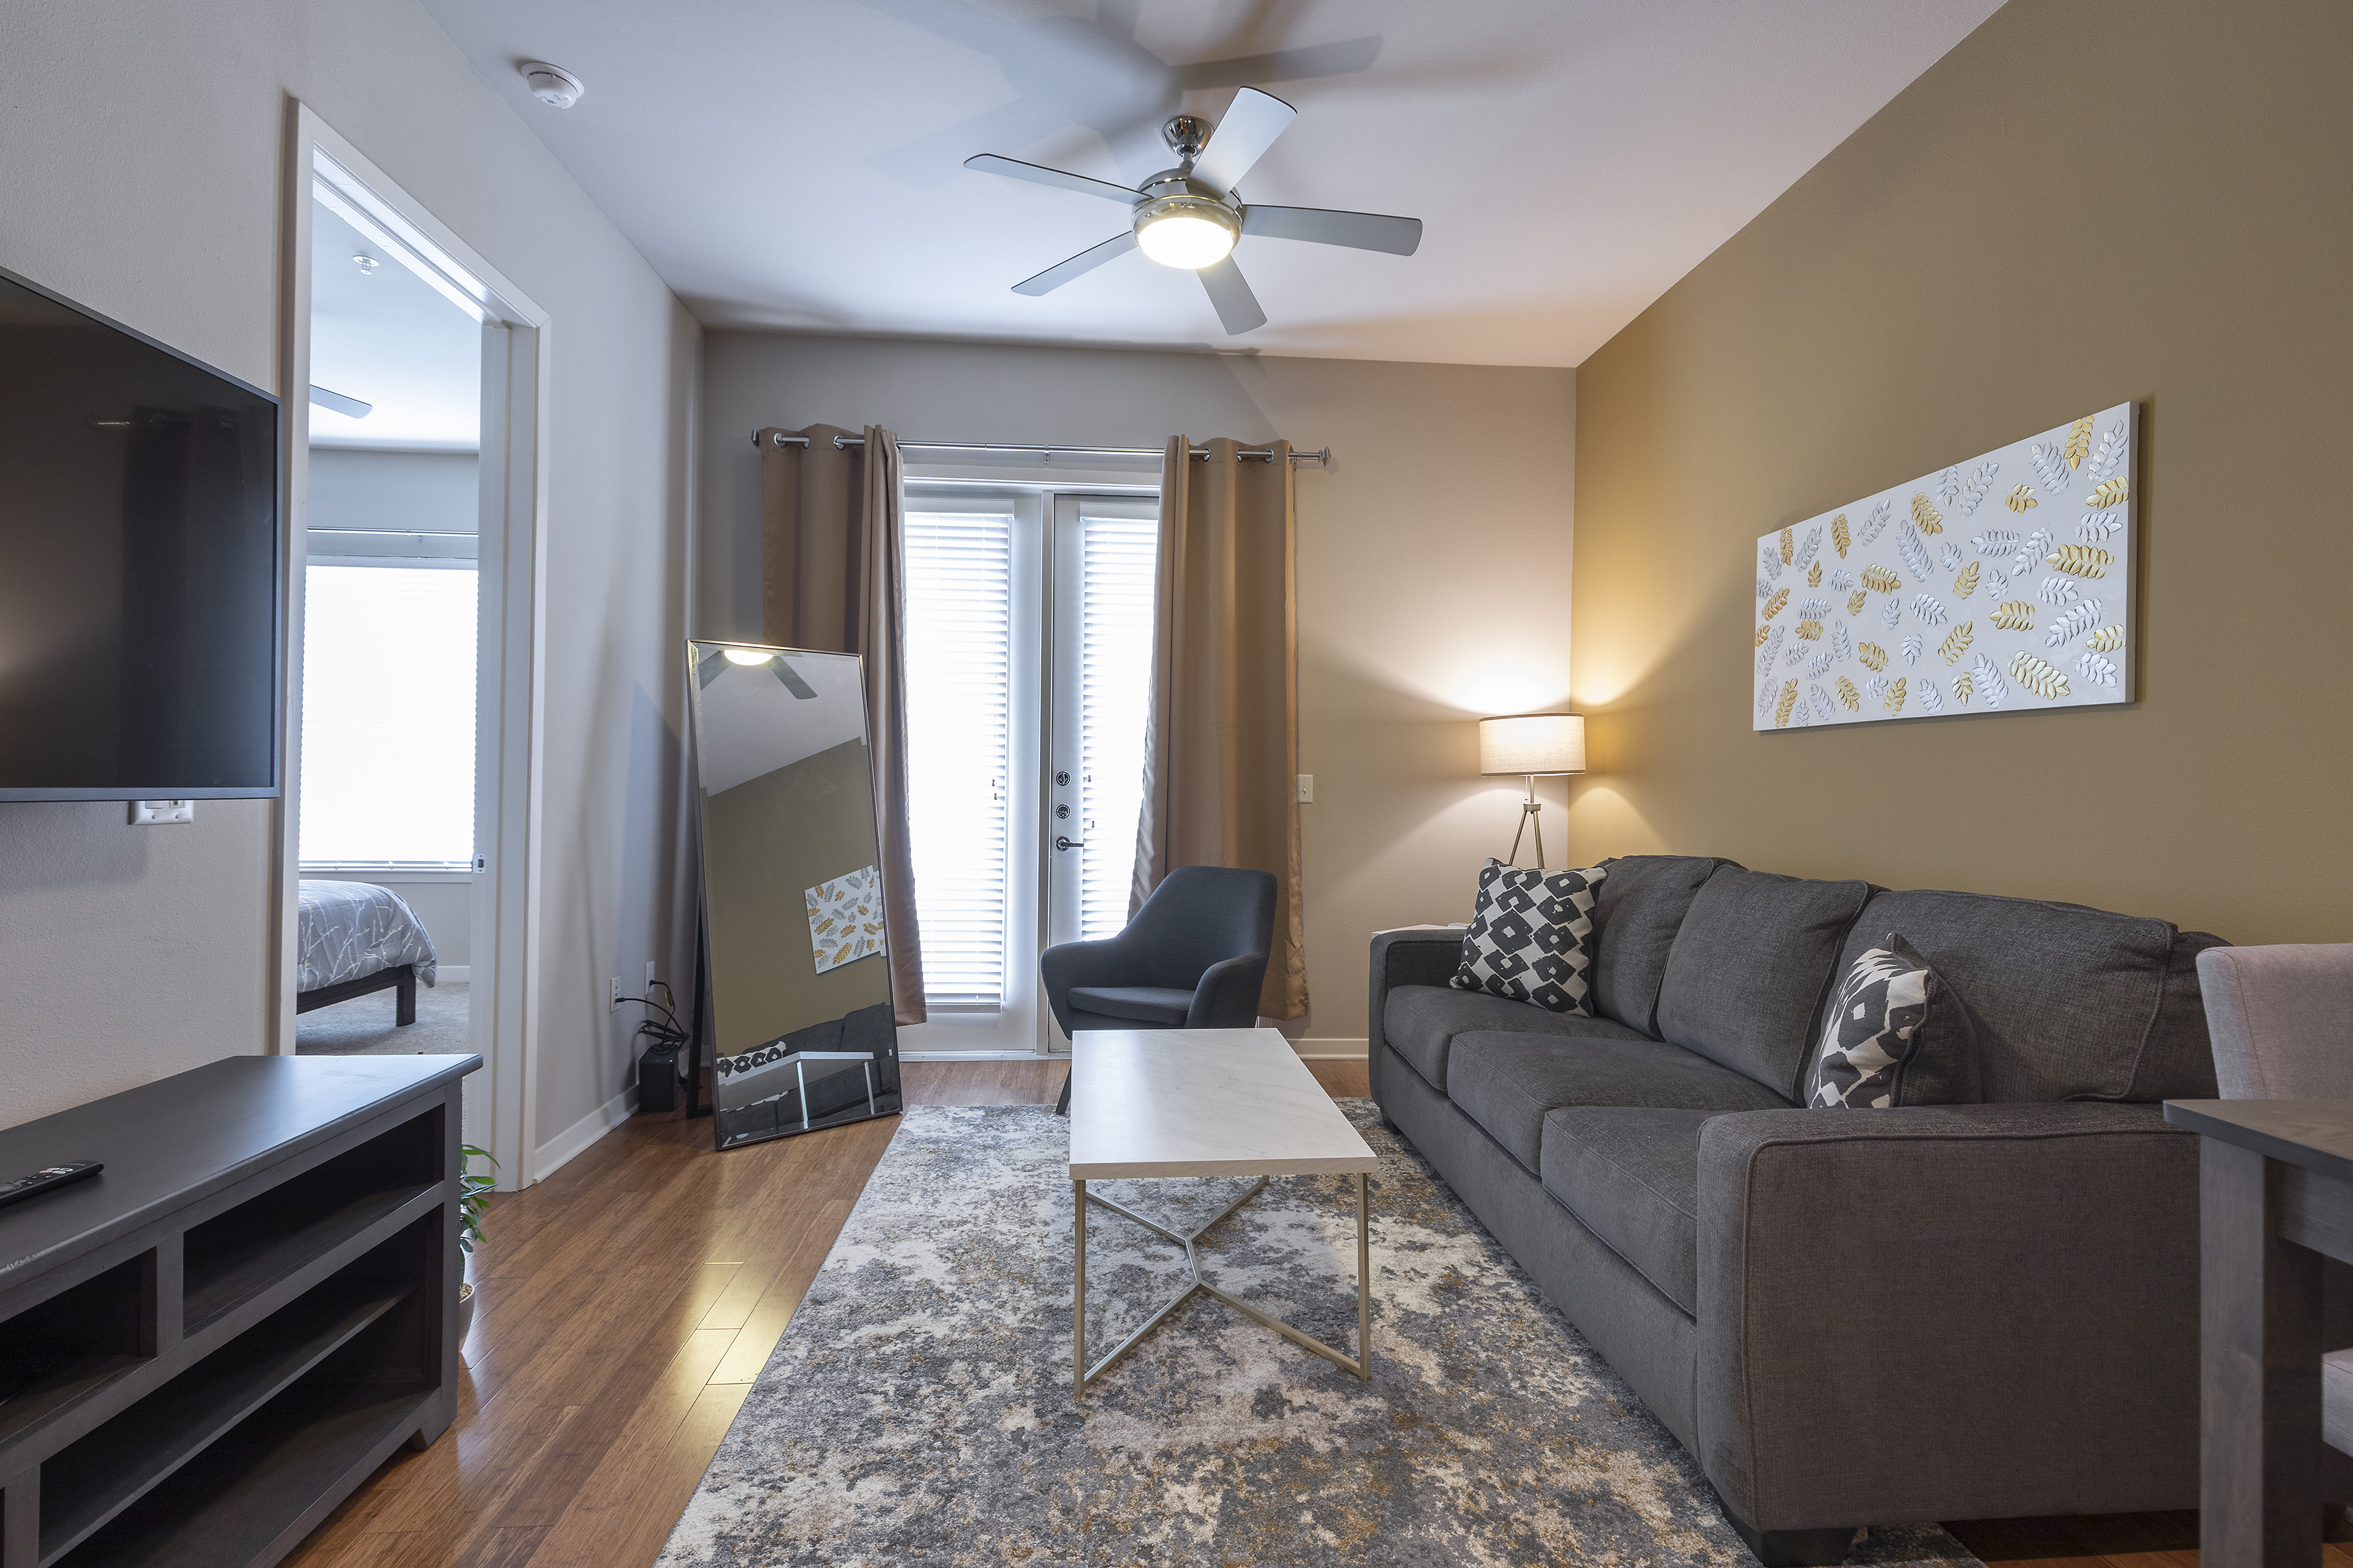 Apartment LUXURIOUS - KING SIZED BED - MED CENTER FULLY EQUIPPED CONDO photo 21441044